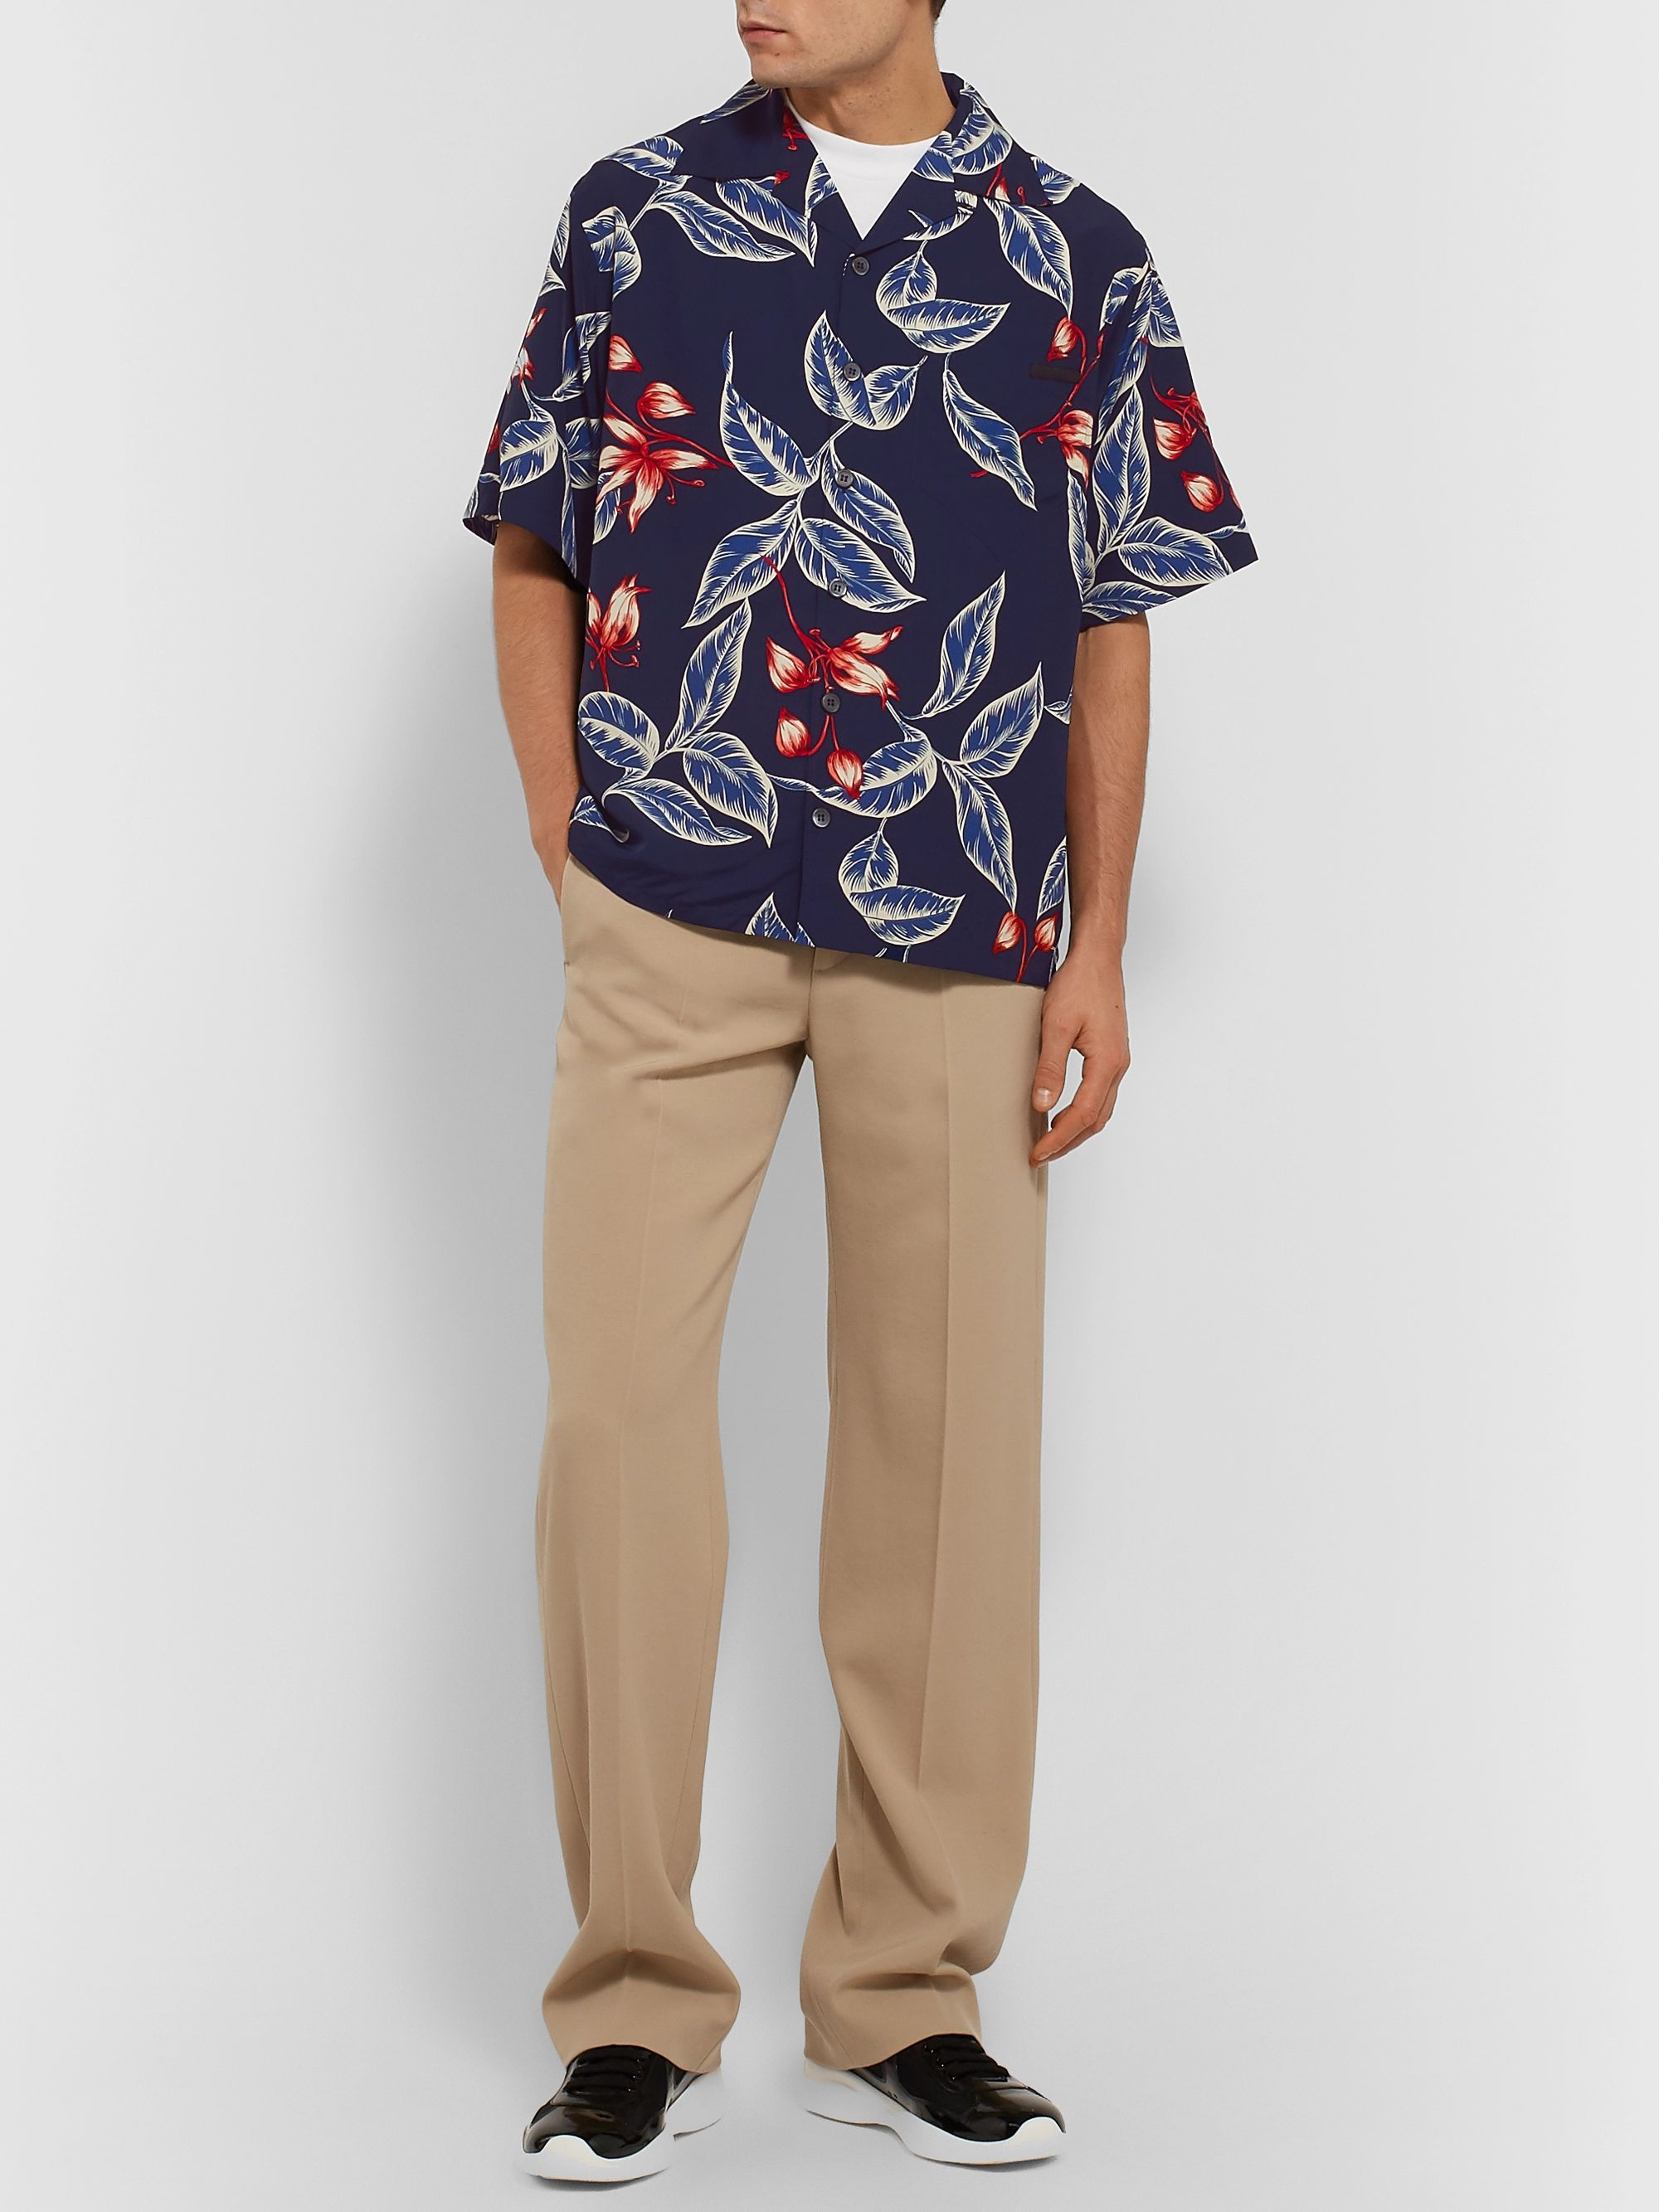 Prada Camp-Collar Printed Voile Shirt